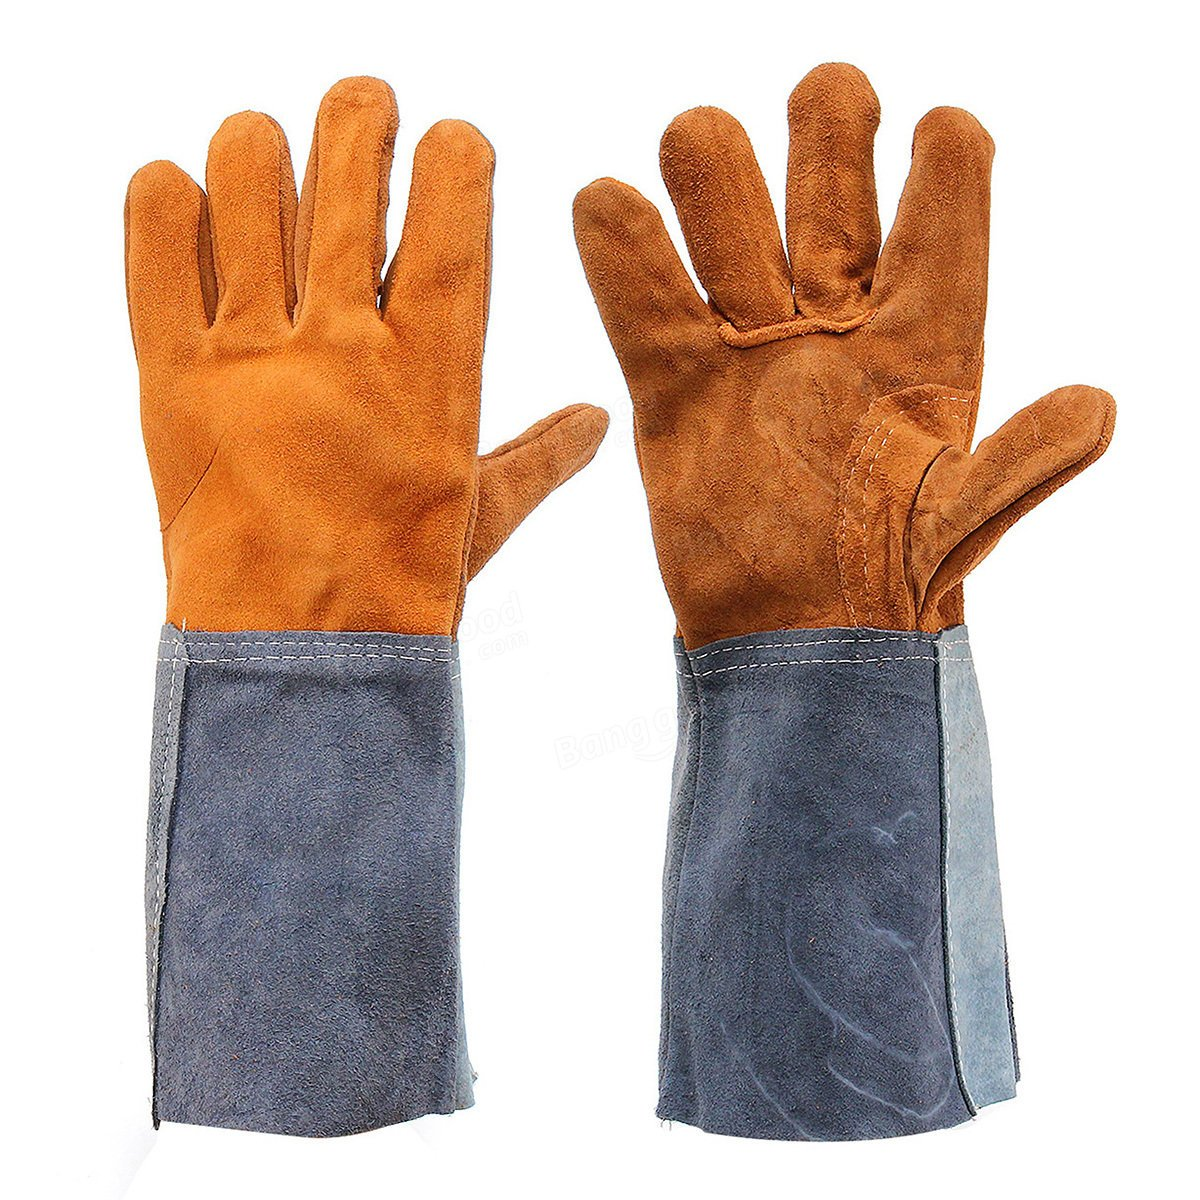 Welding Gloves Welders Work Soft Cowhide Leather Plus Gloves for Protecting - Electrical Welding Tools Clothing & Gloves - 1 x Soldering iron heavy duty chisel(75W/100W/150W) by Unknown